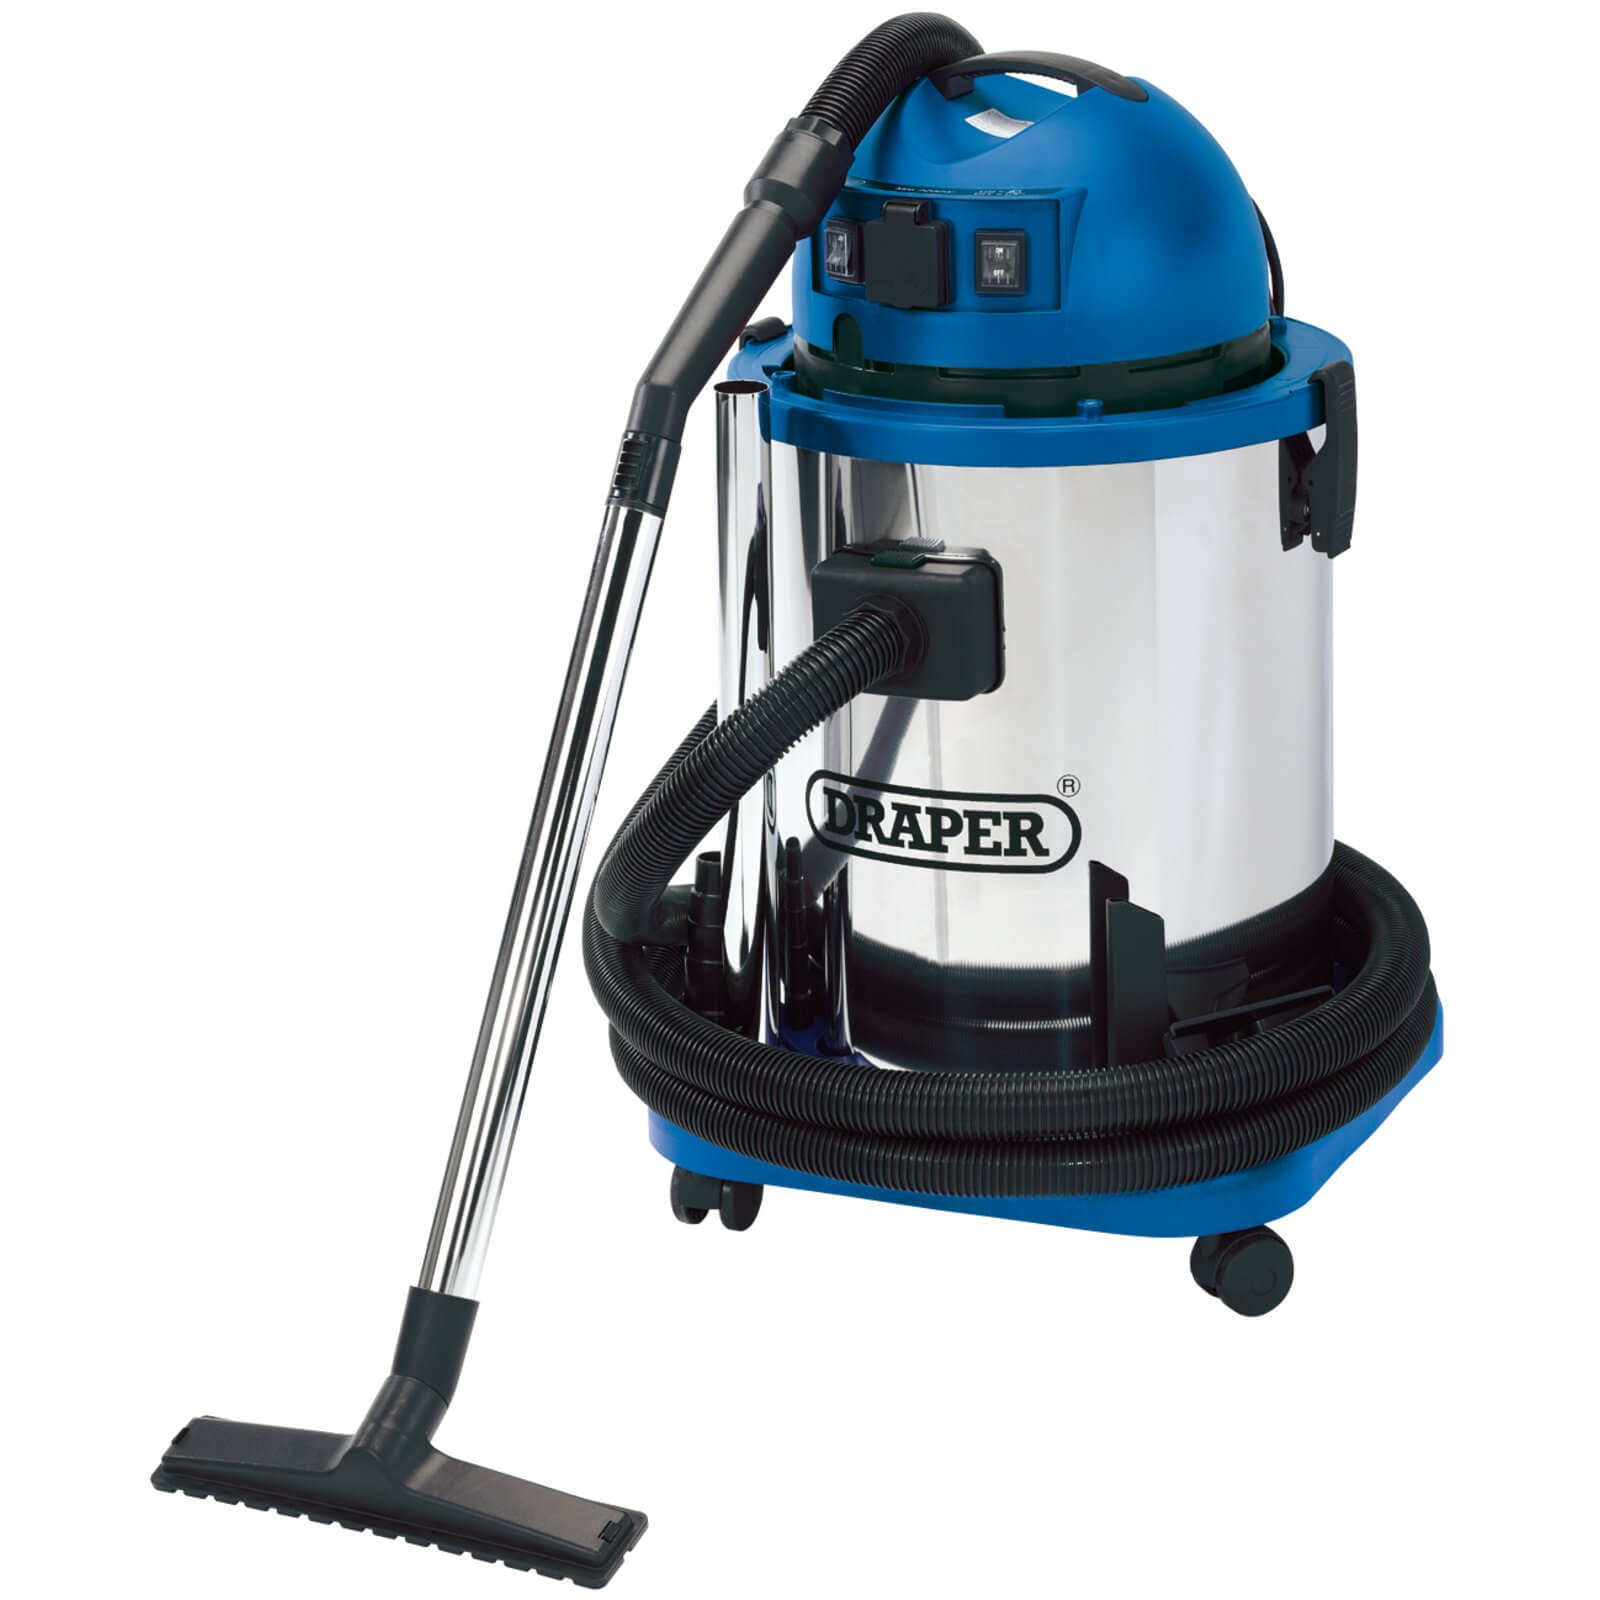 Draper WDV50SS Wet and Dry Vacuum Cleaner 240v